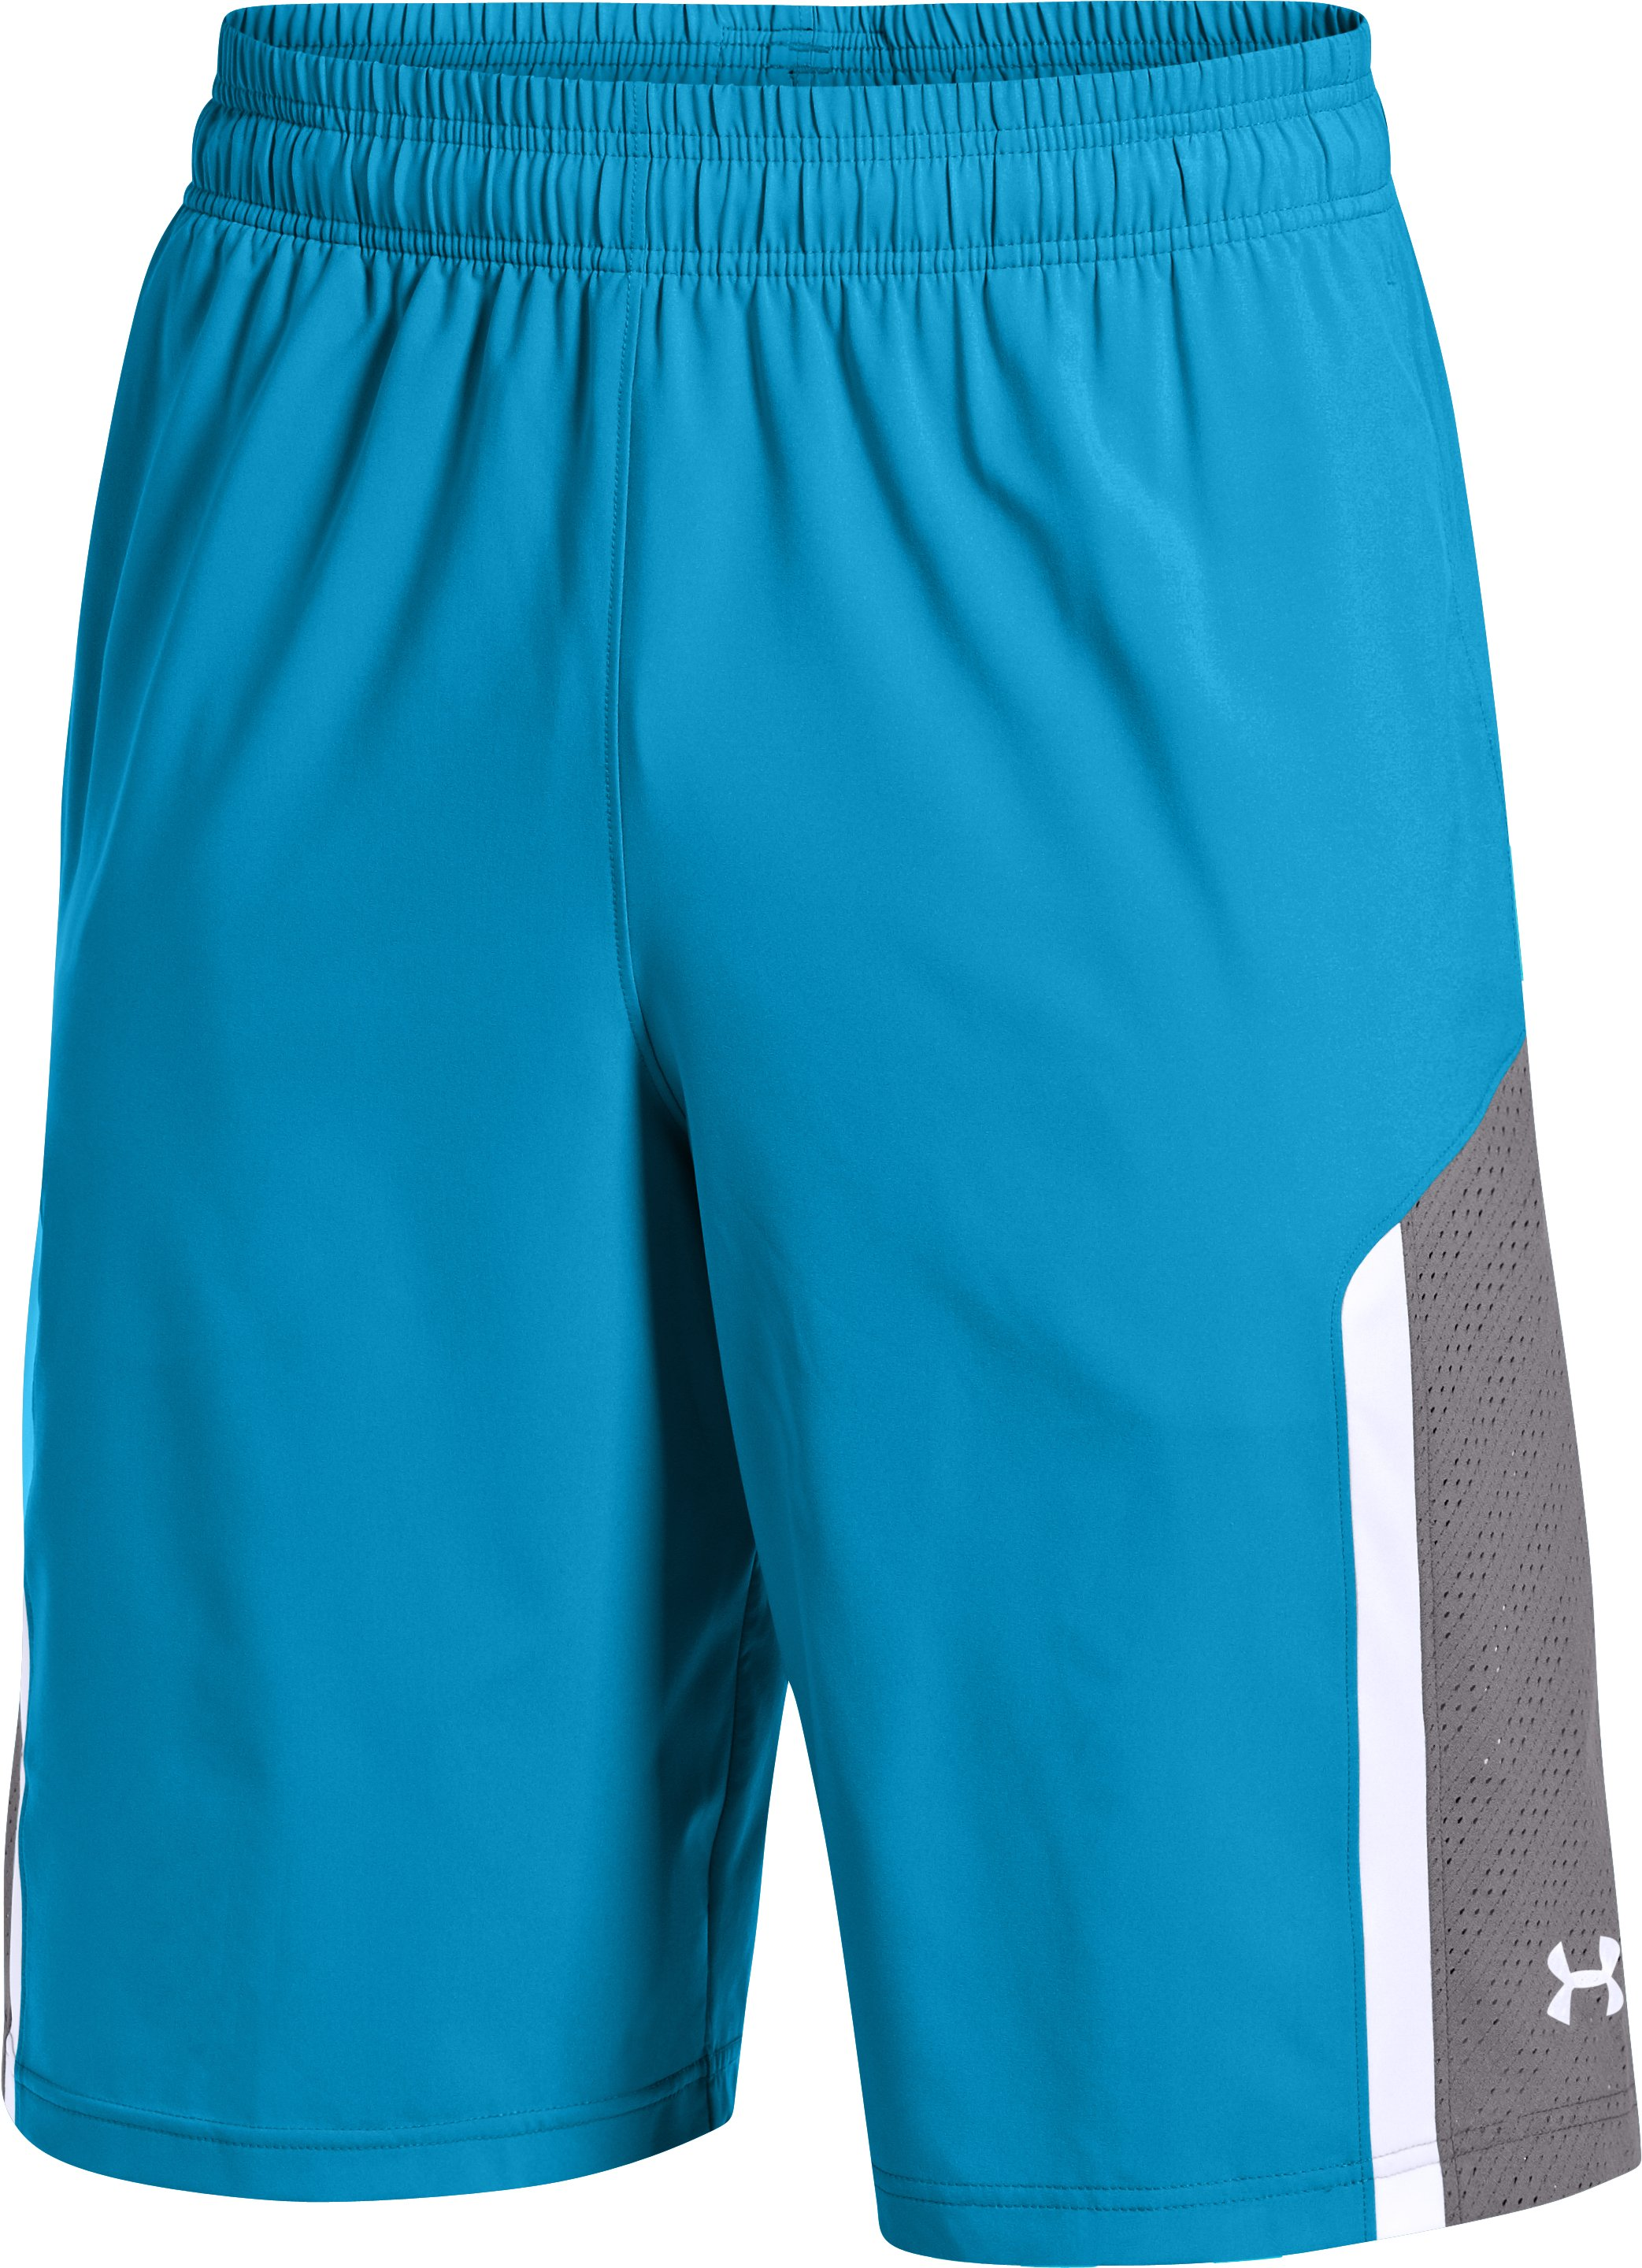 "Men's UA Runwitit 12"" Shorts, PIRATE BLUE"